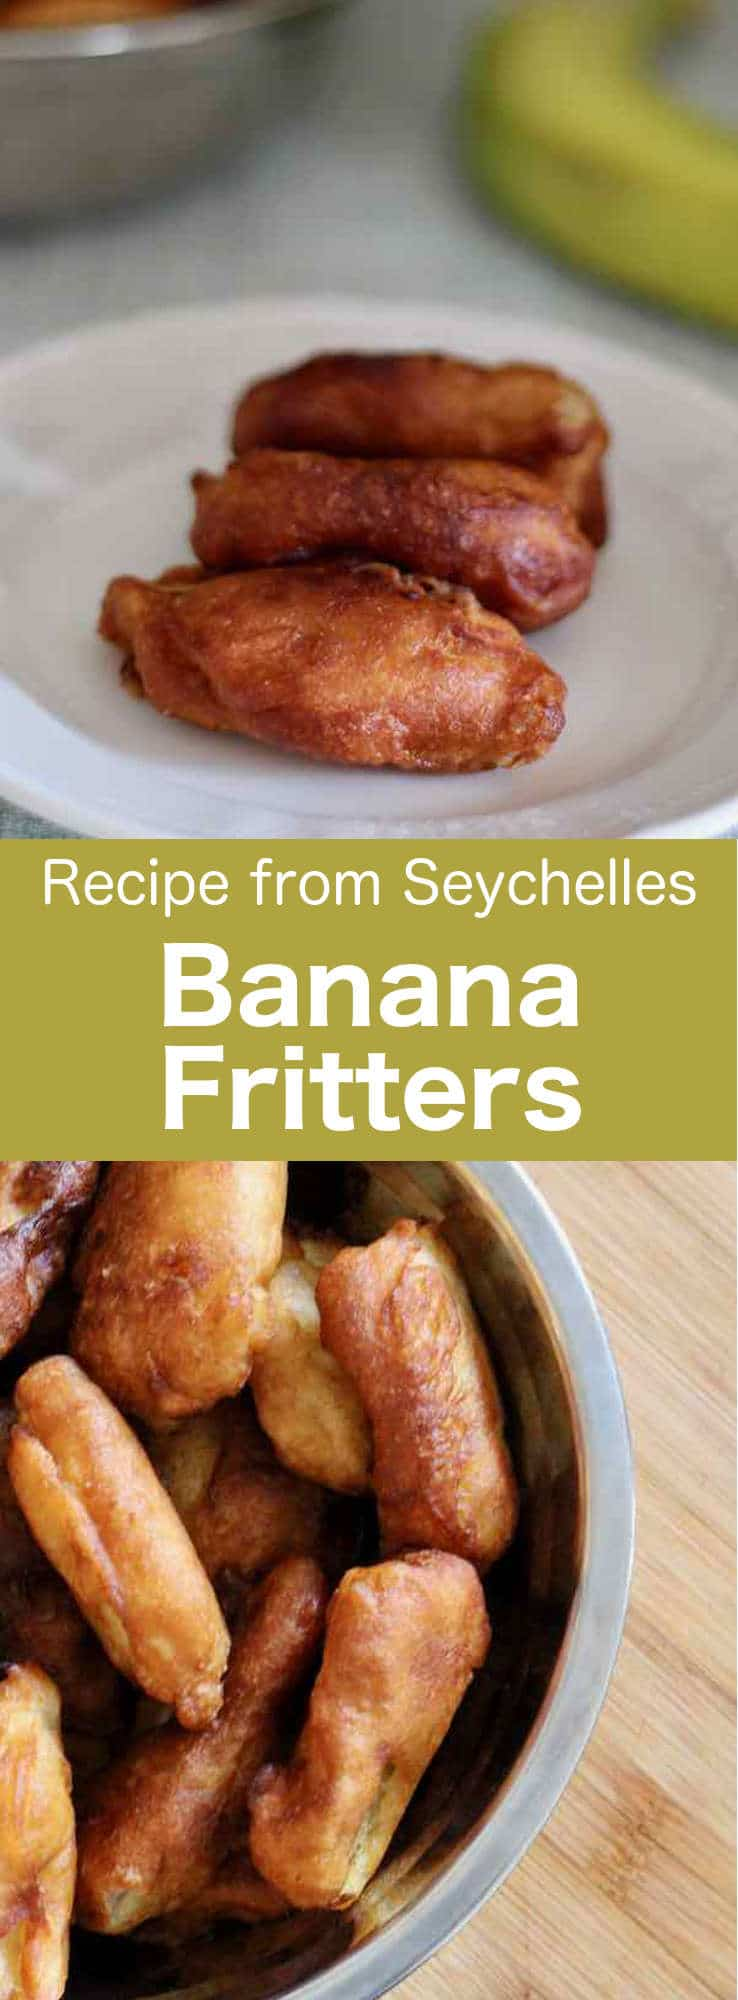 Banana flambé fritters are delicious banana beignets from the Seychelles that are flambéed with rum. #banana #dessert #Seychelles #islandcuisine #196flavors